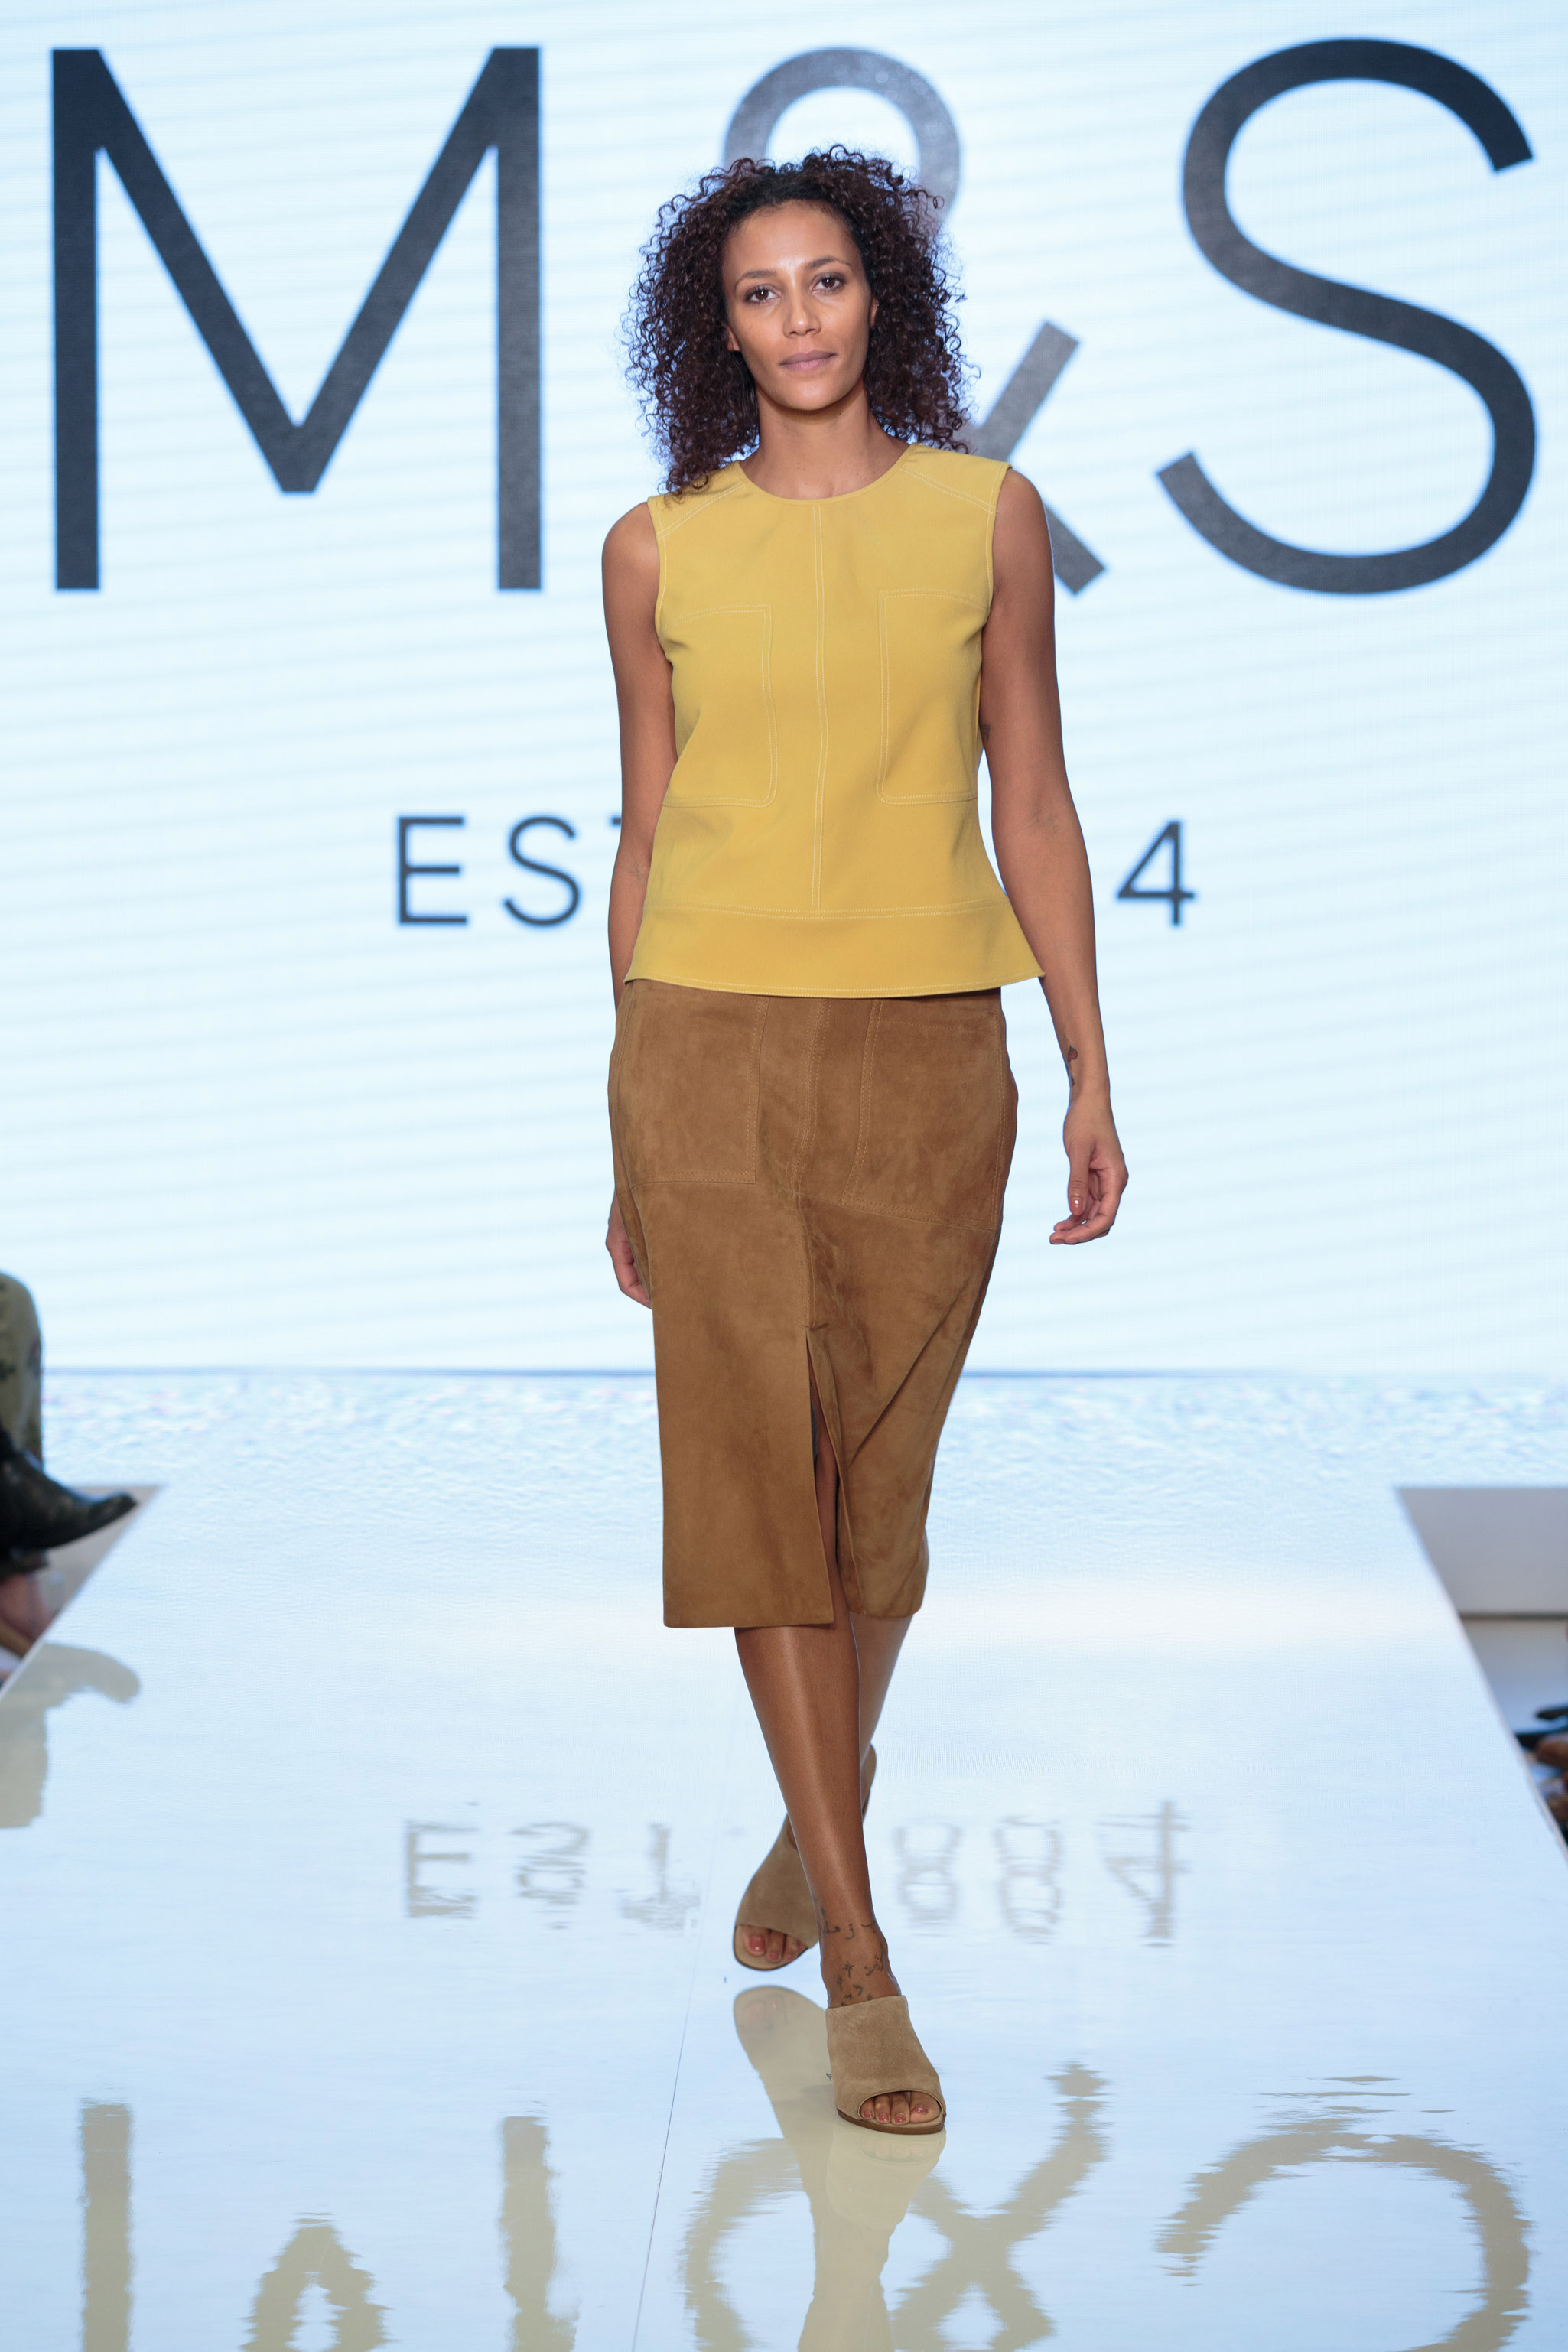 M and S Catwalk